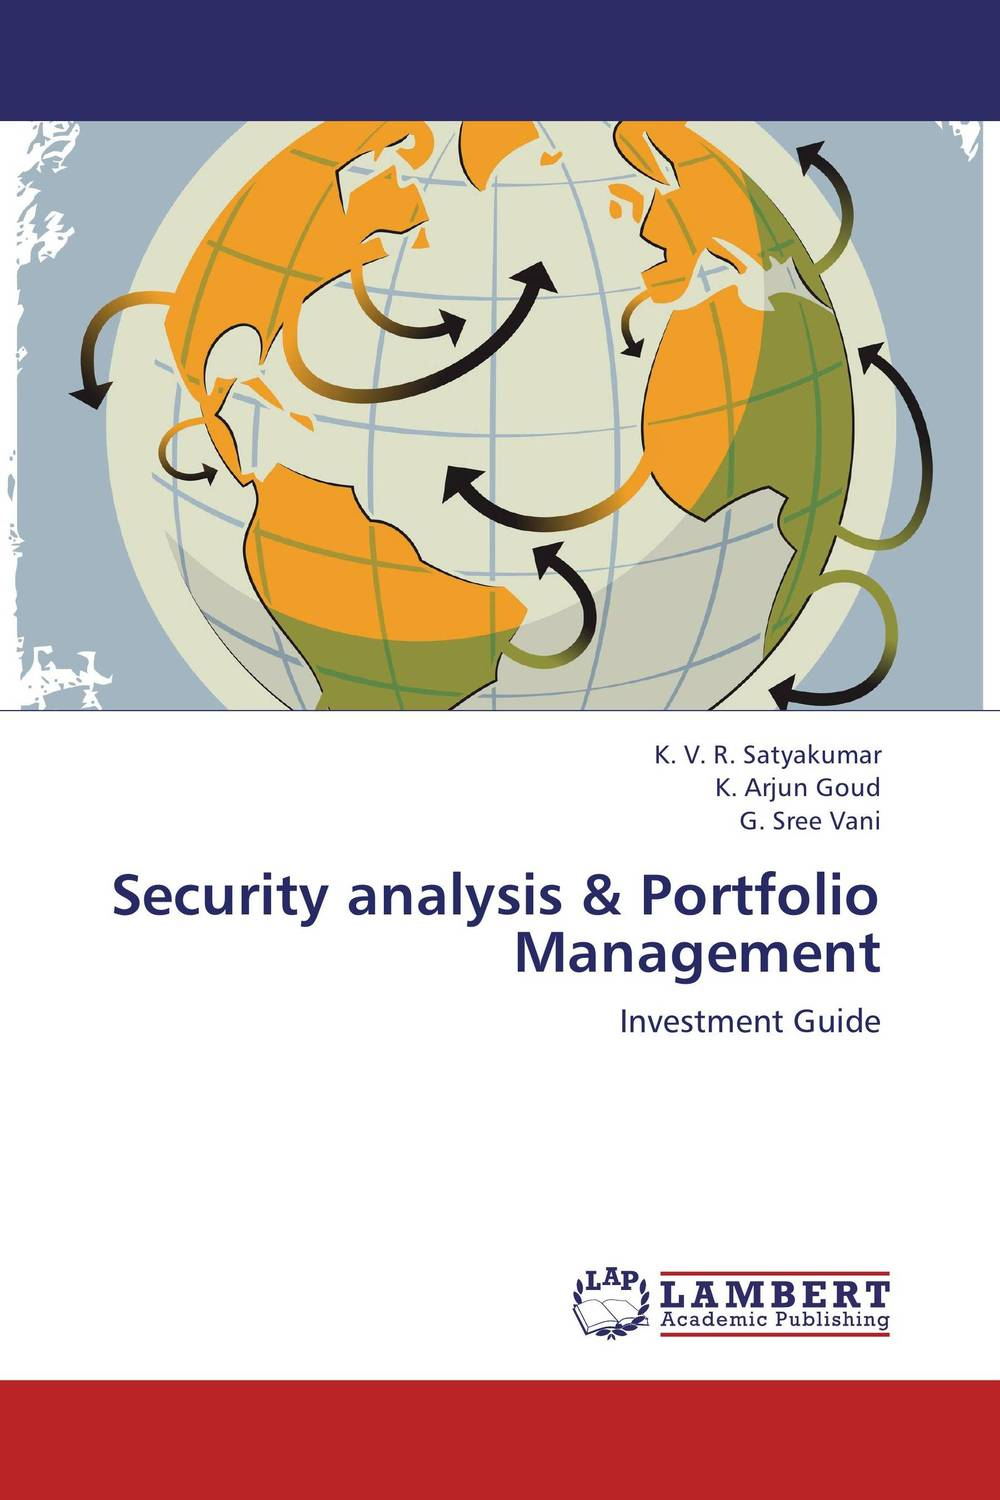 Security analysis & Portfolio Management srichander ramaswamy managing credit risk in corporate bond portfolios a practitioner s guide